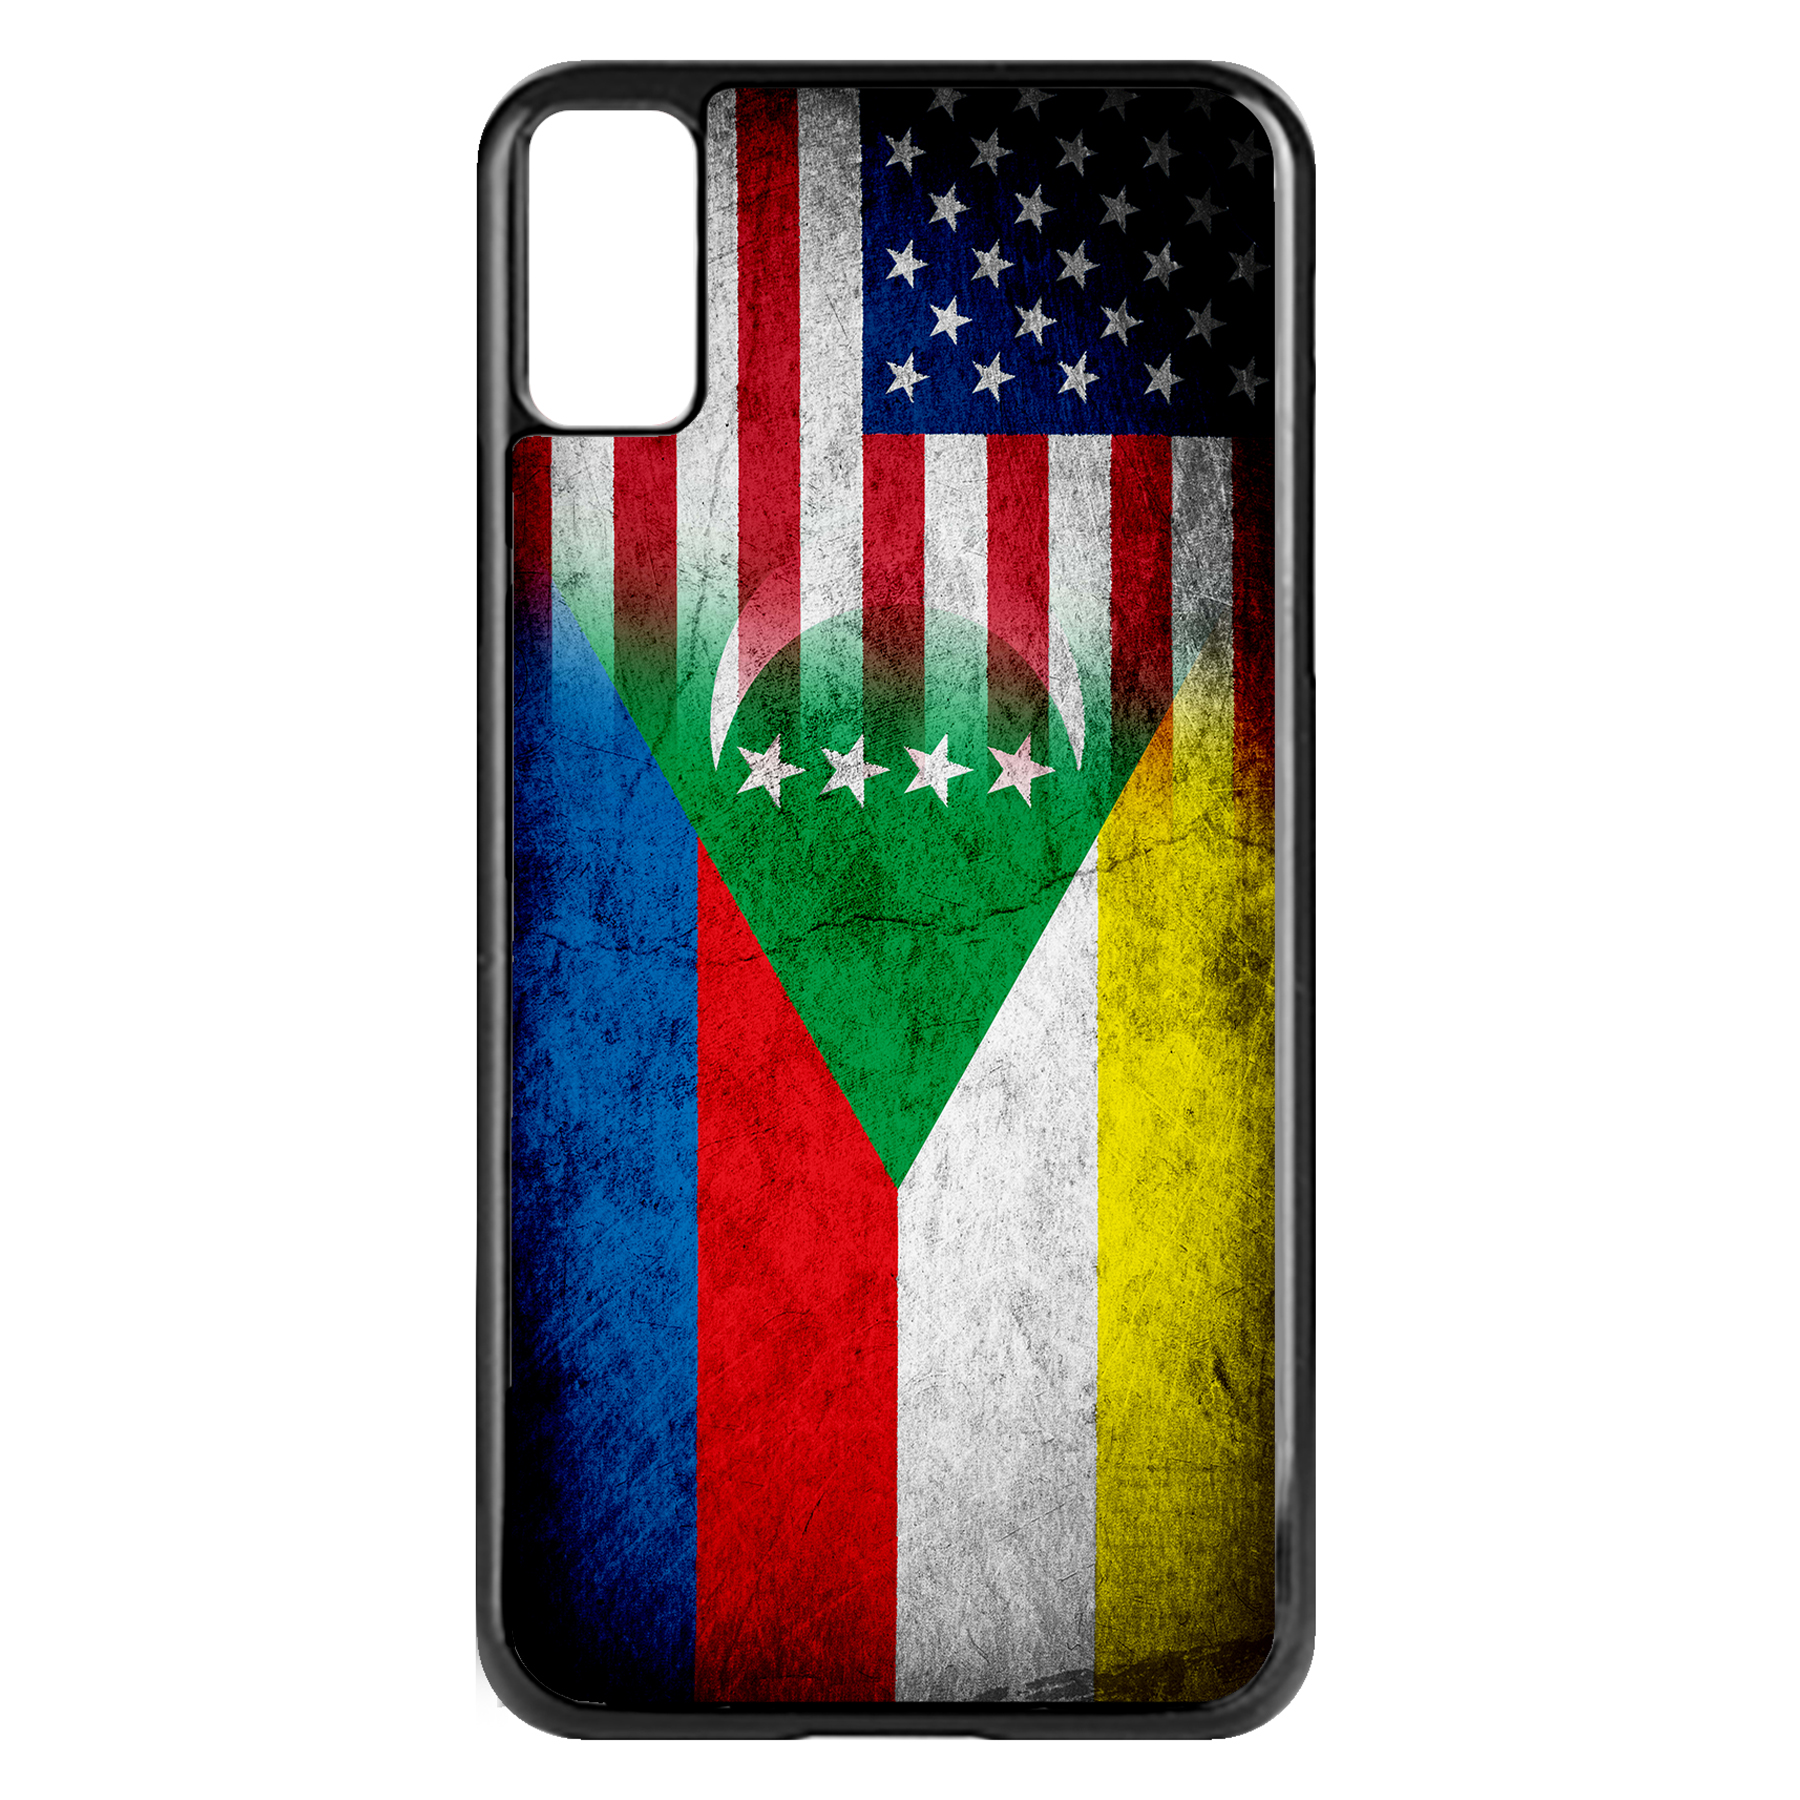 Apple-iPhone-Case-with-Flag-of-Comoros-Comorian-Many-Design-Options thumbnail 80